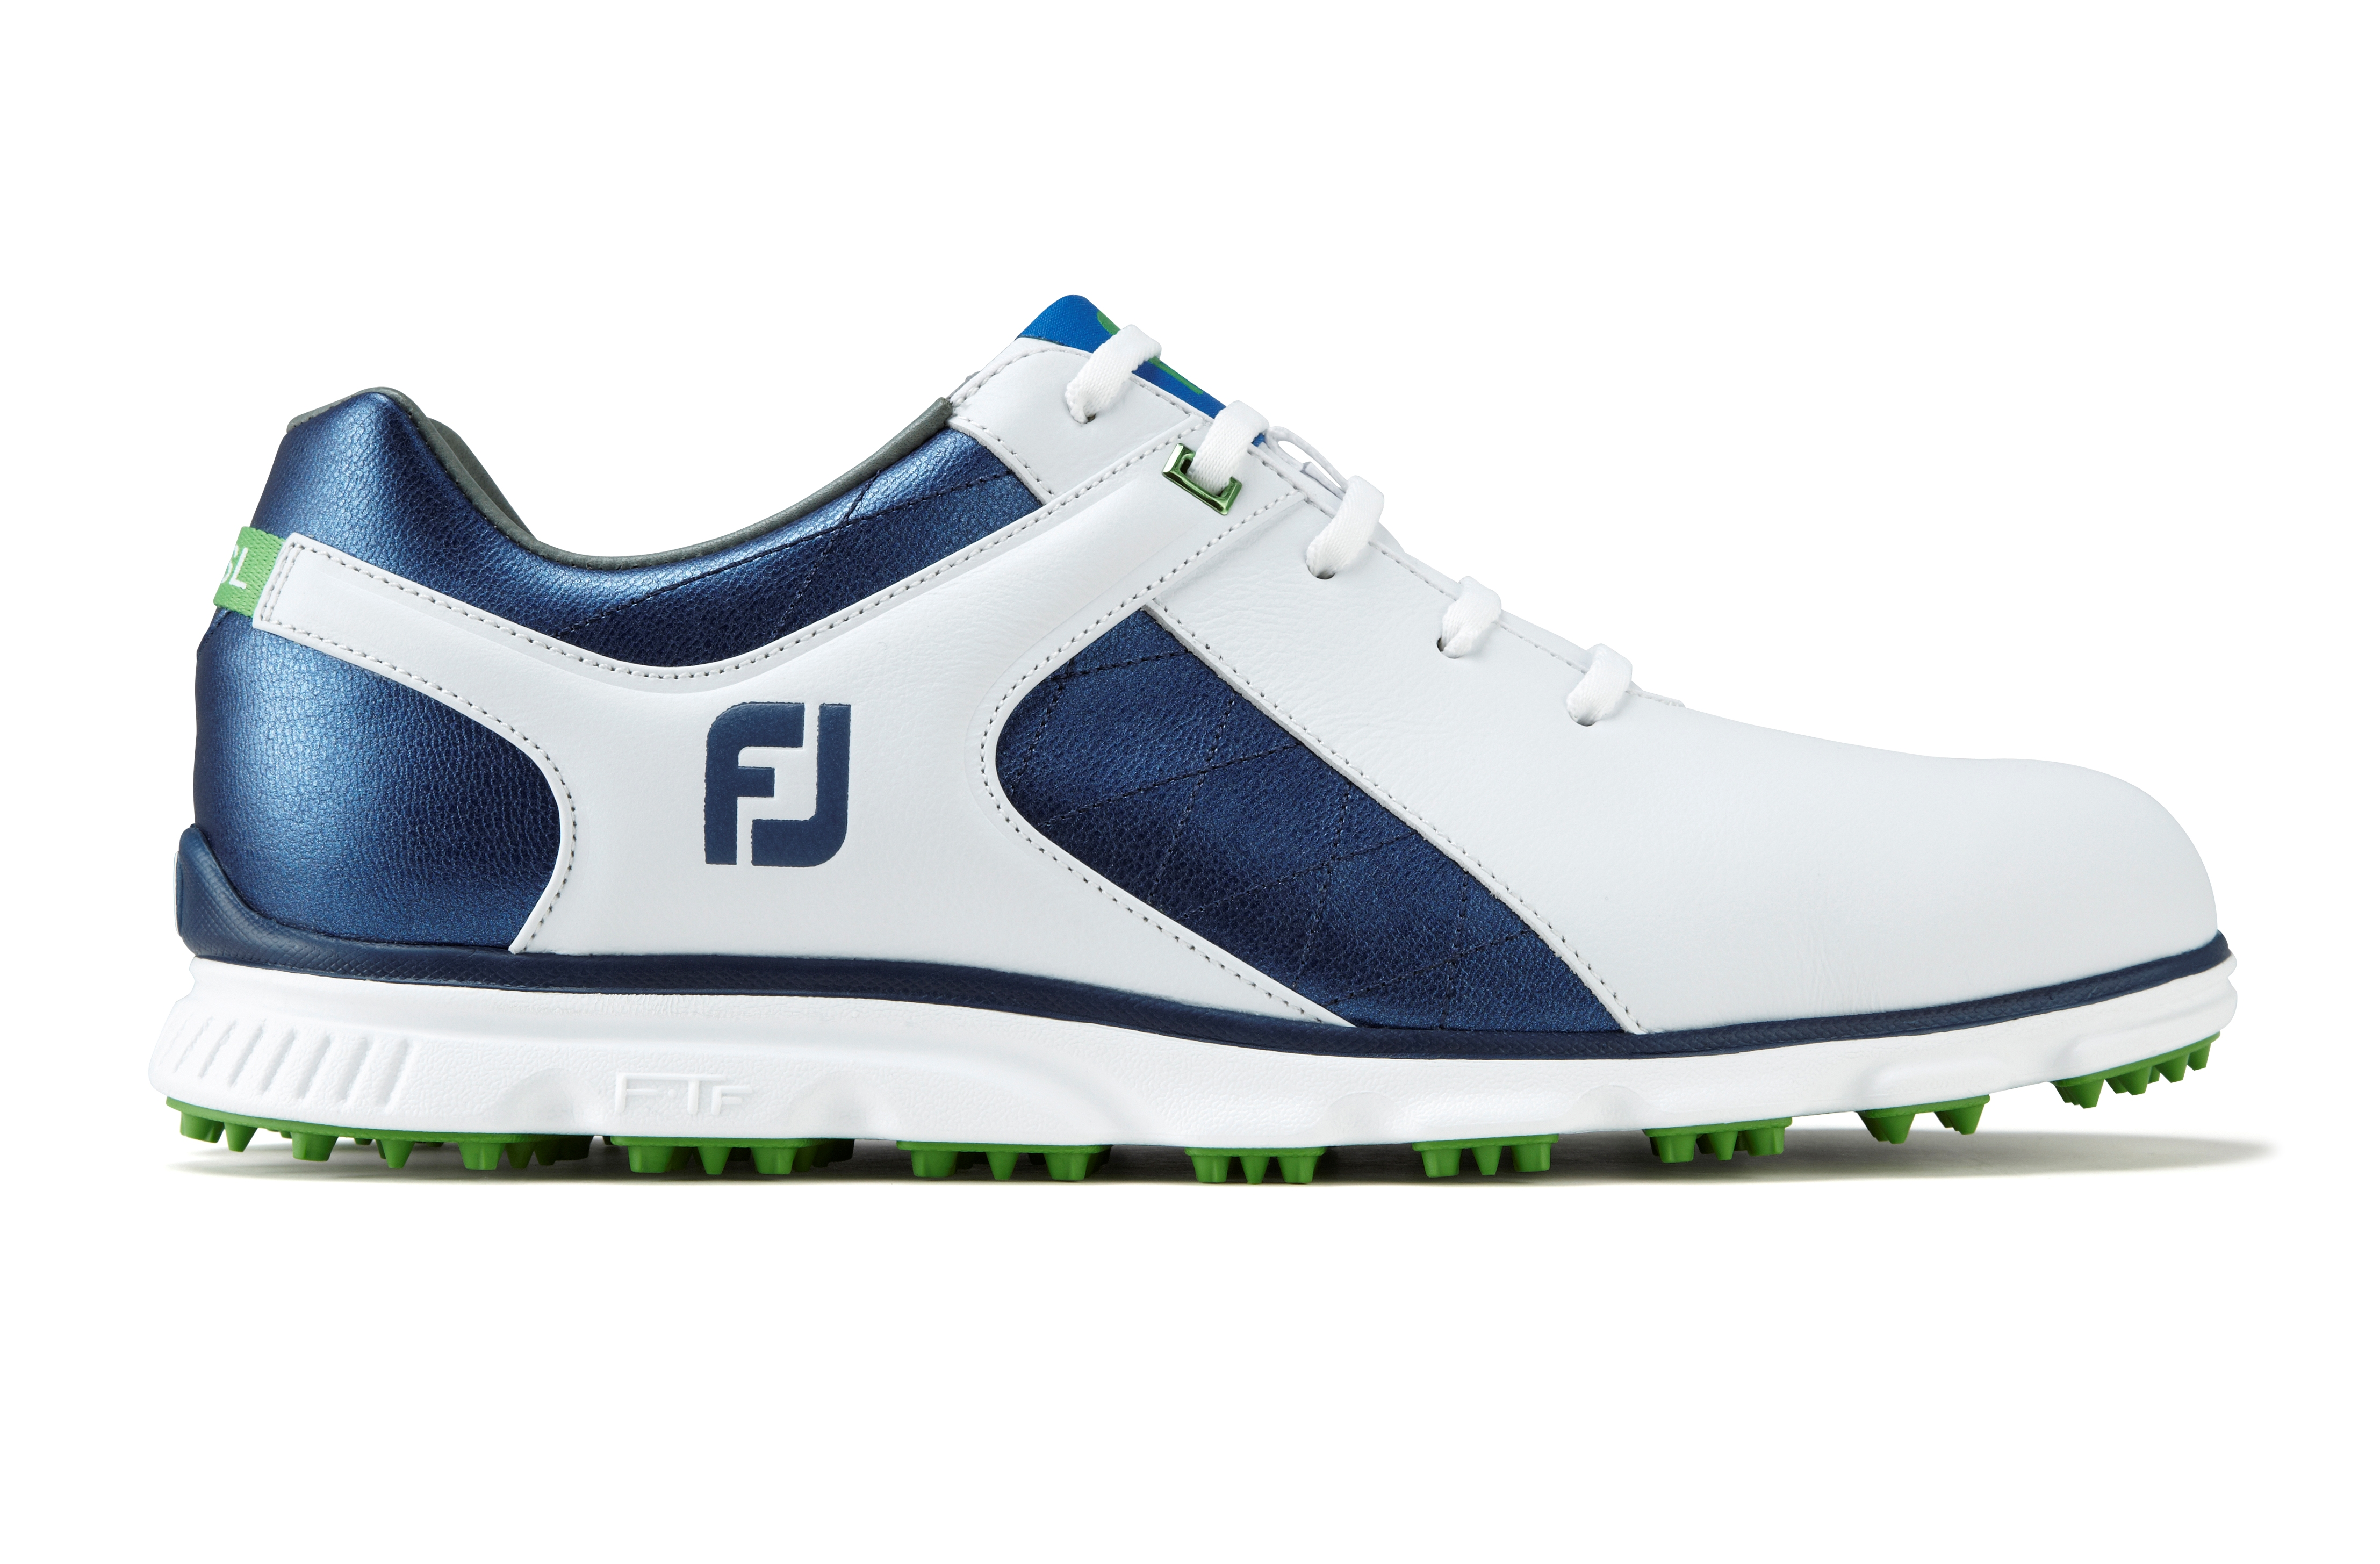 Footjoy Spikeless Golf Shoes 28 Images Footjoy S